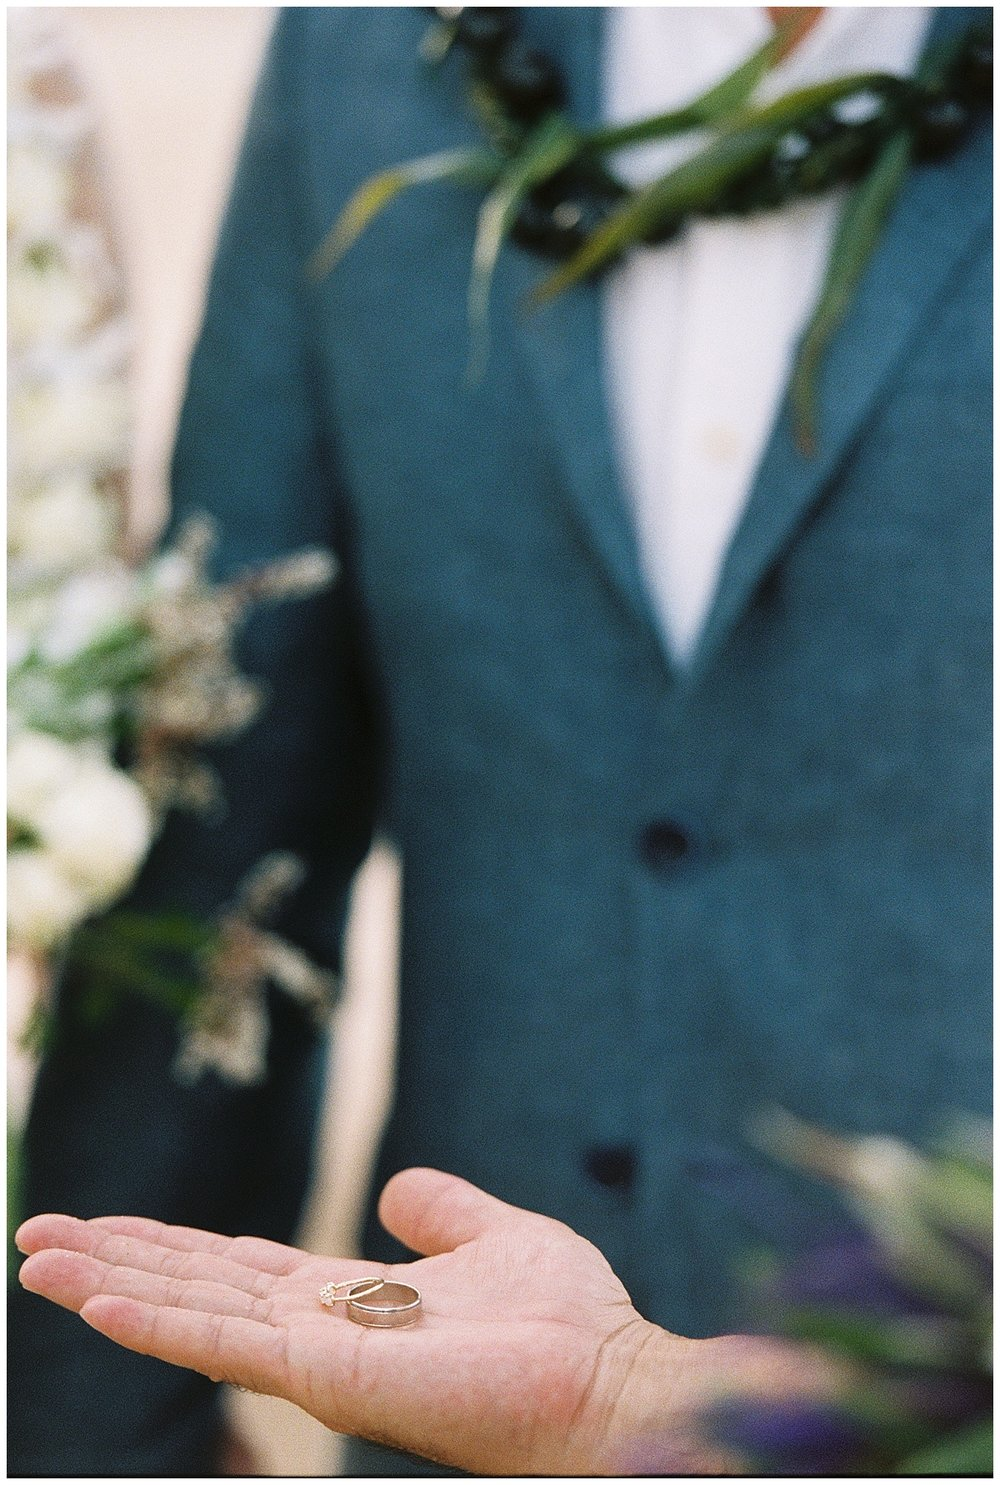 beach-elopement-ceremony-rings-blue-suit.jpg